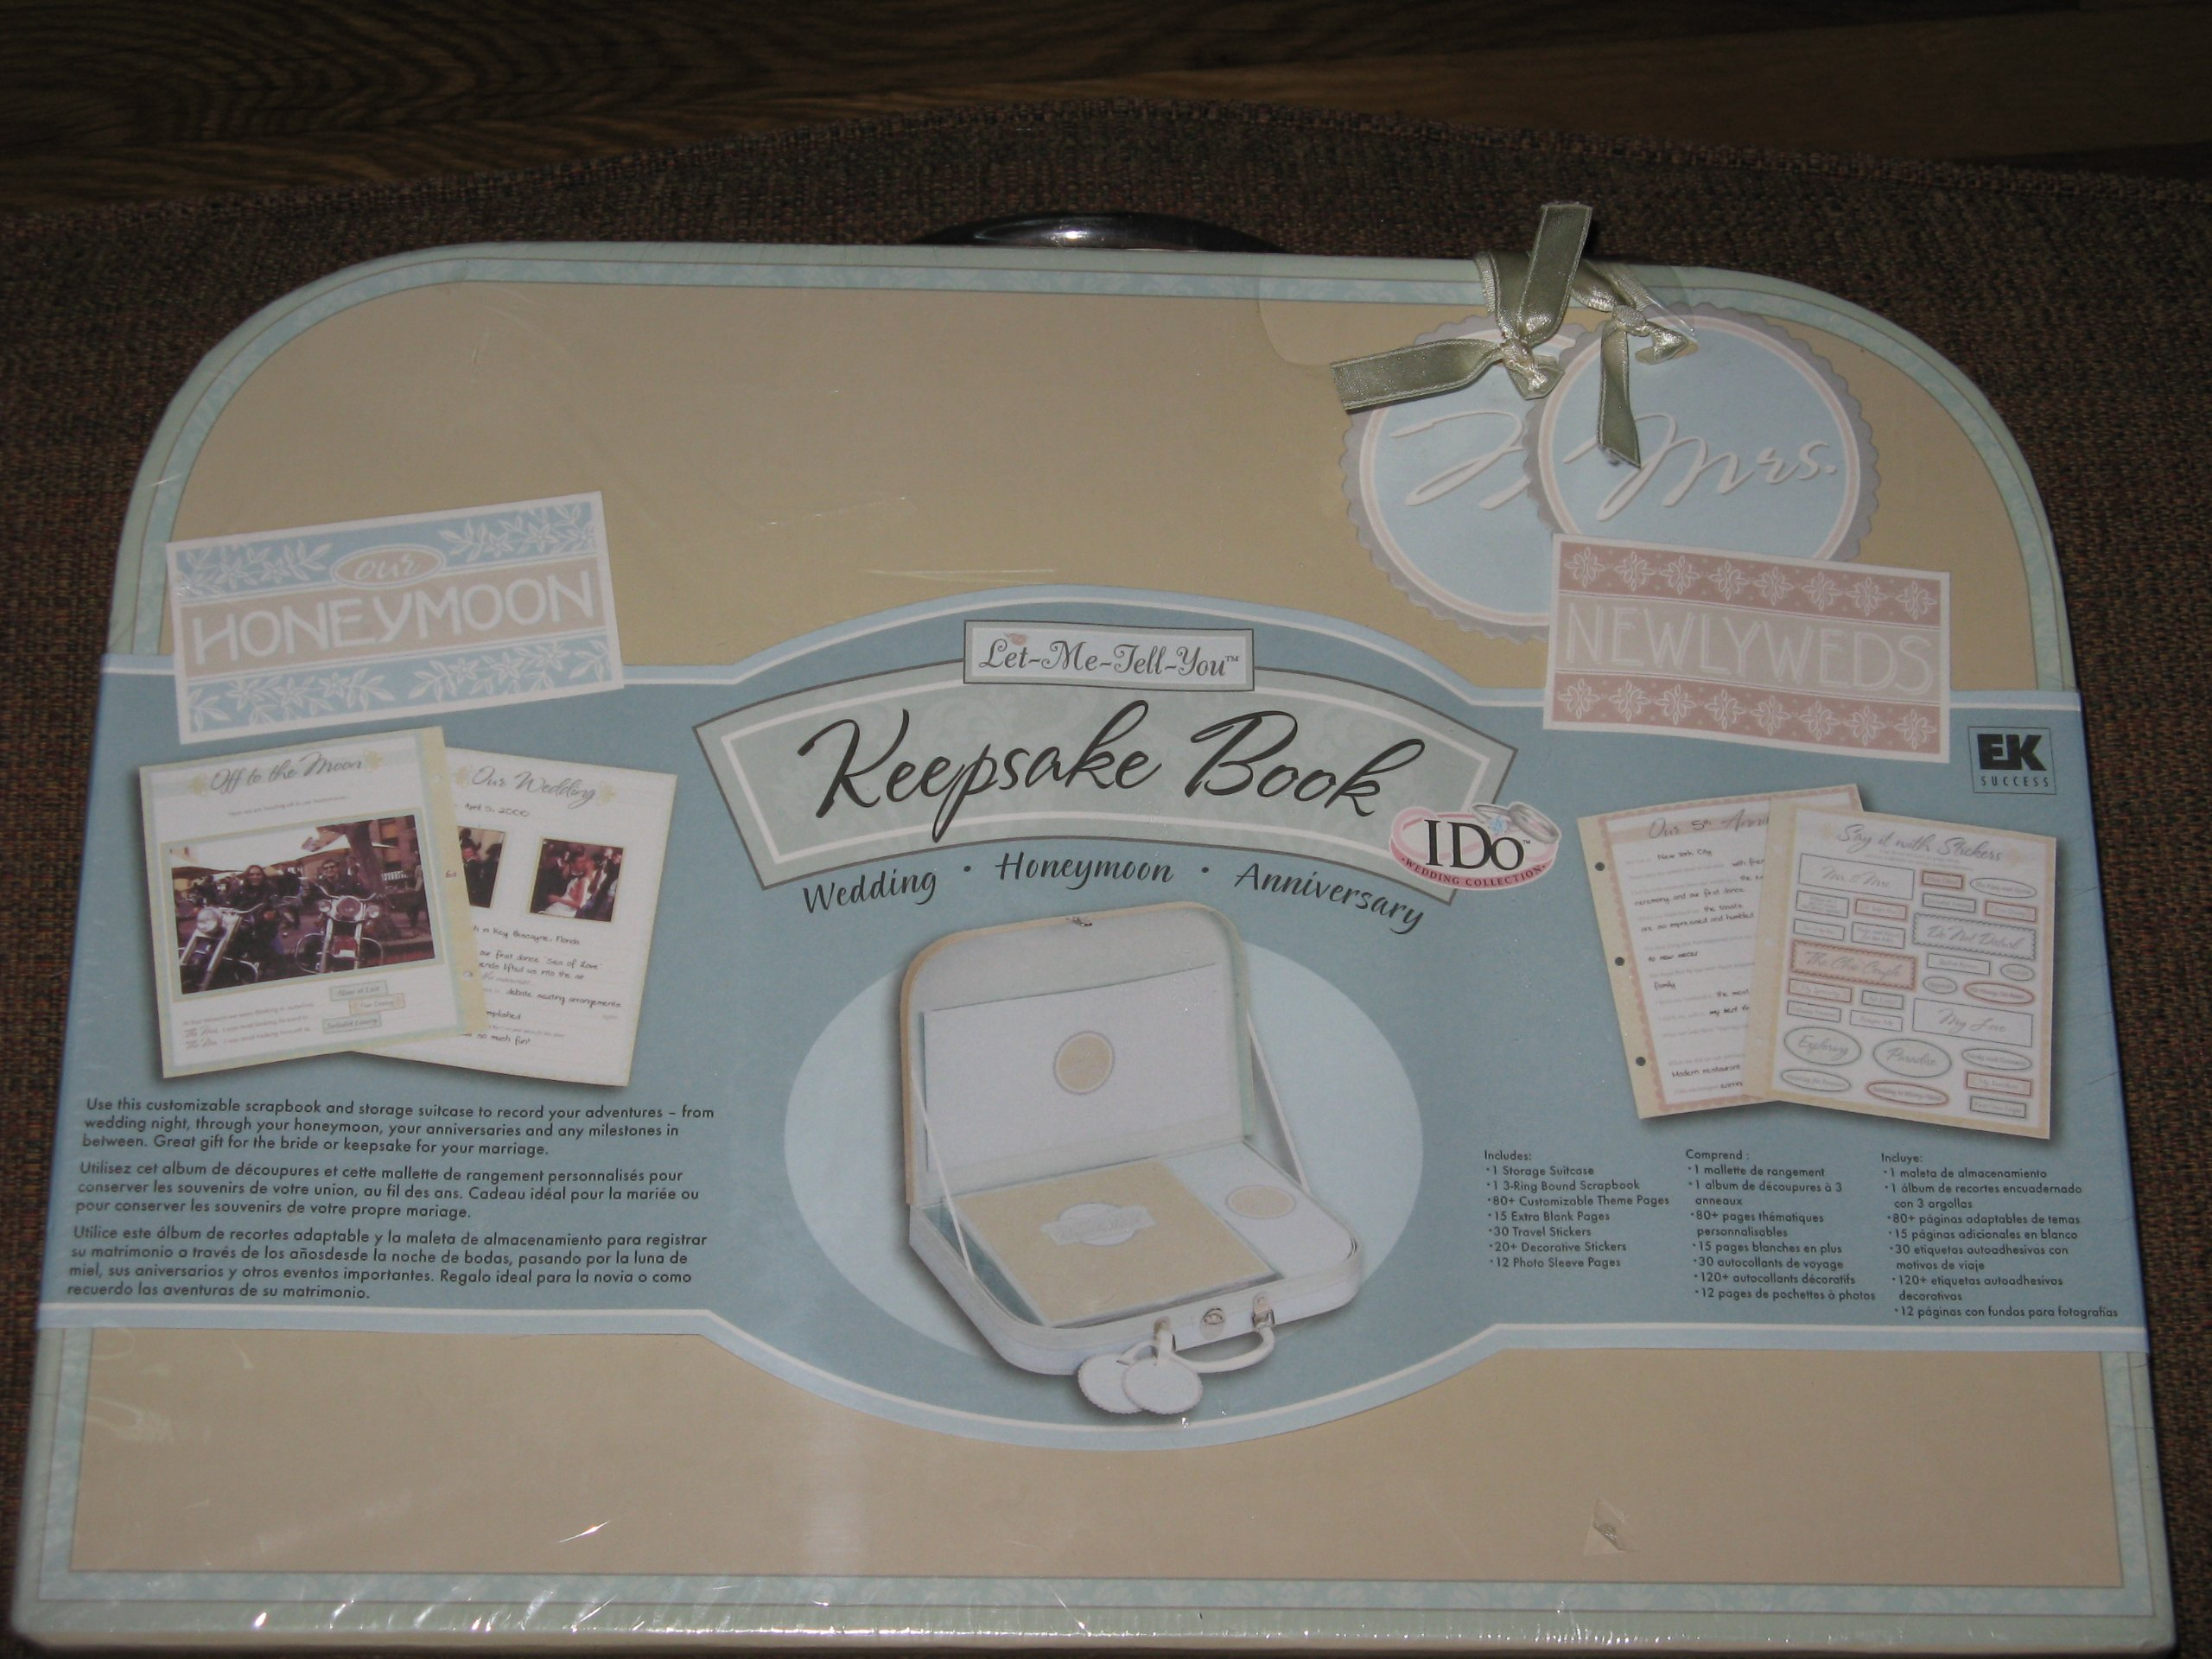 I Do Let-Me-Tell-You Wedding Keepsake Book Kit (Wedding Honeymoon Anniversary) Ring-bound – 2010